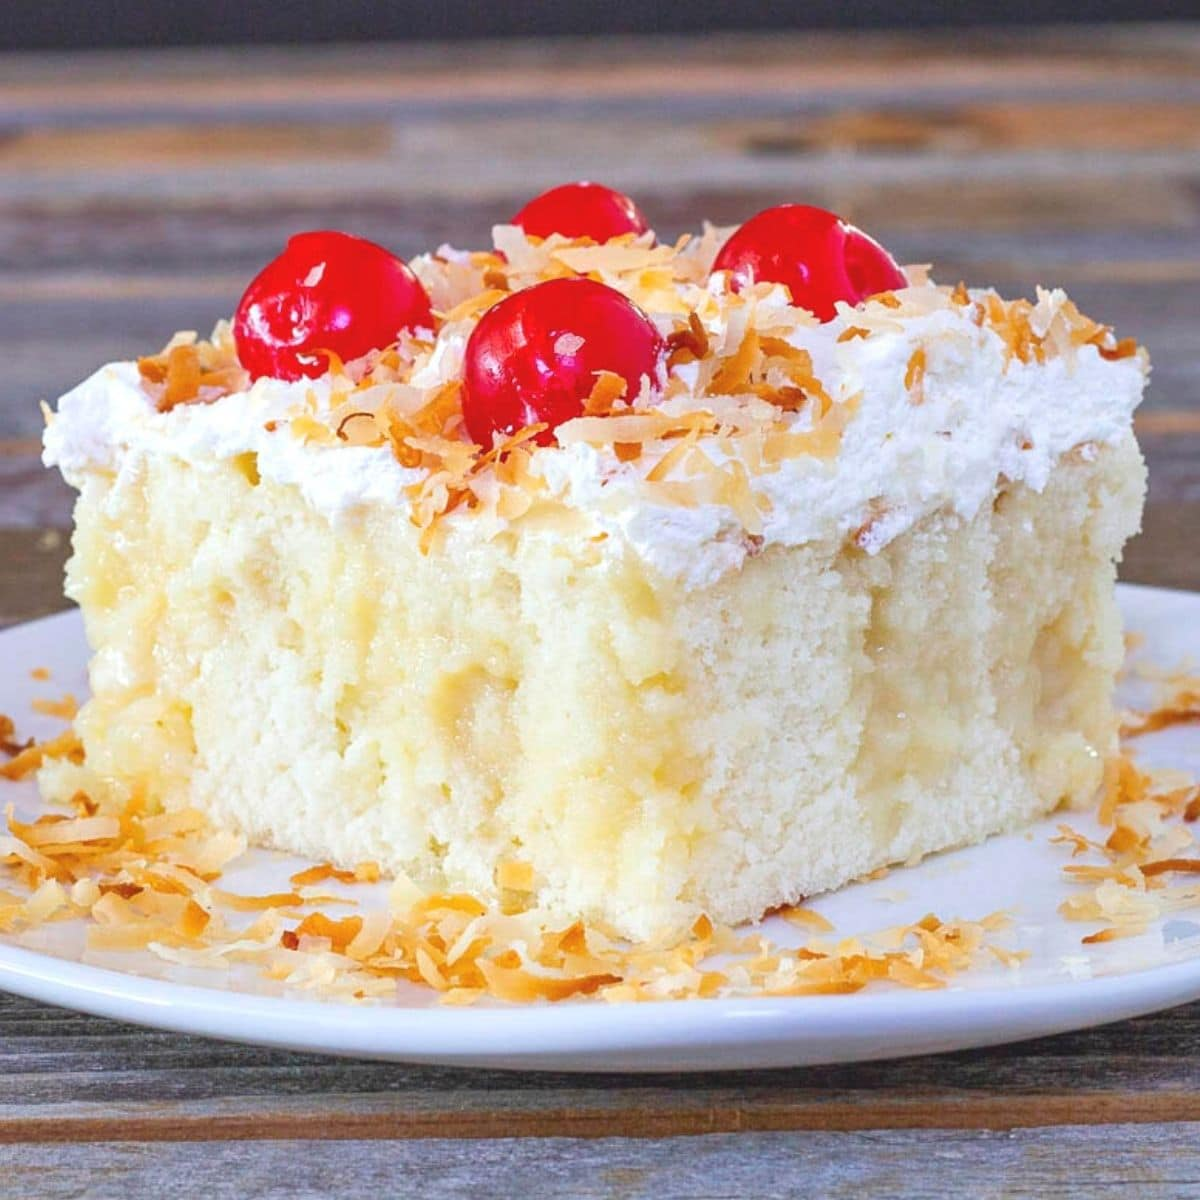 Piece of coconut cake topped with cherries